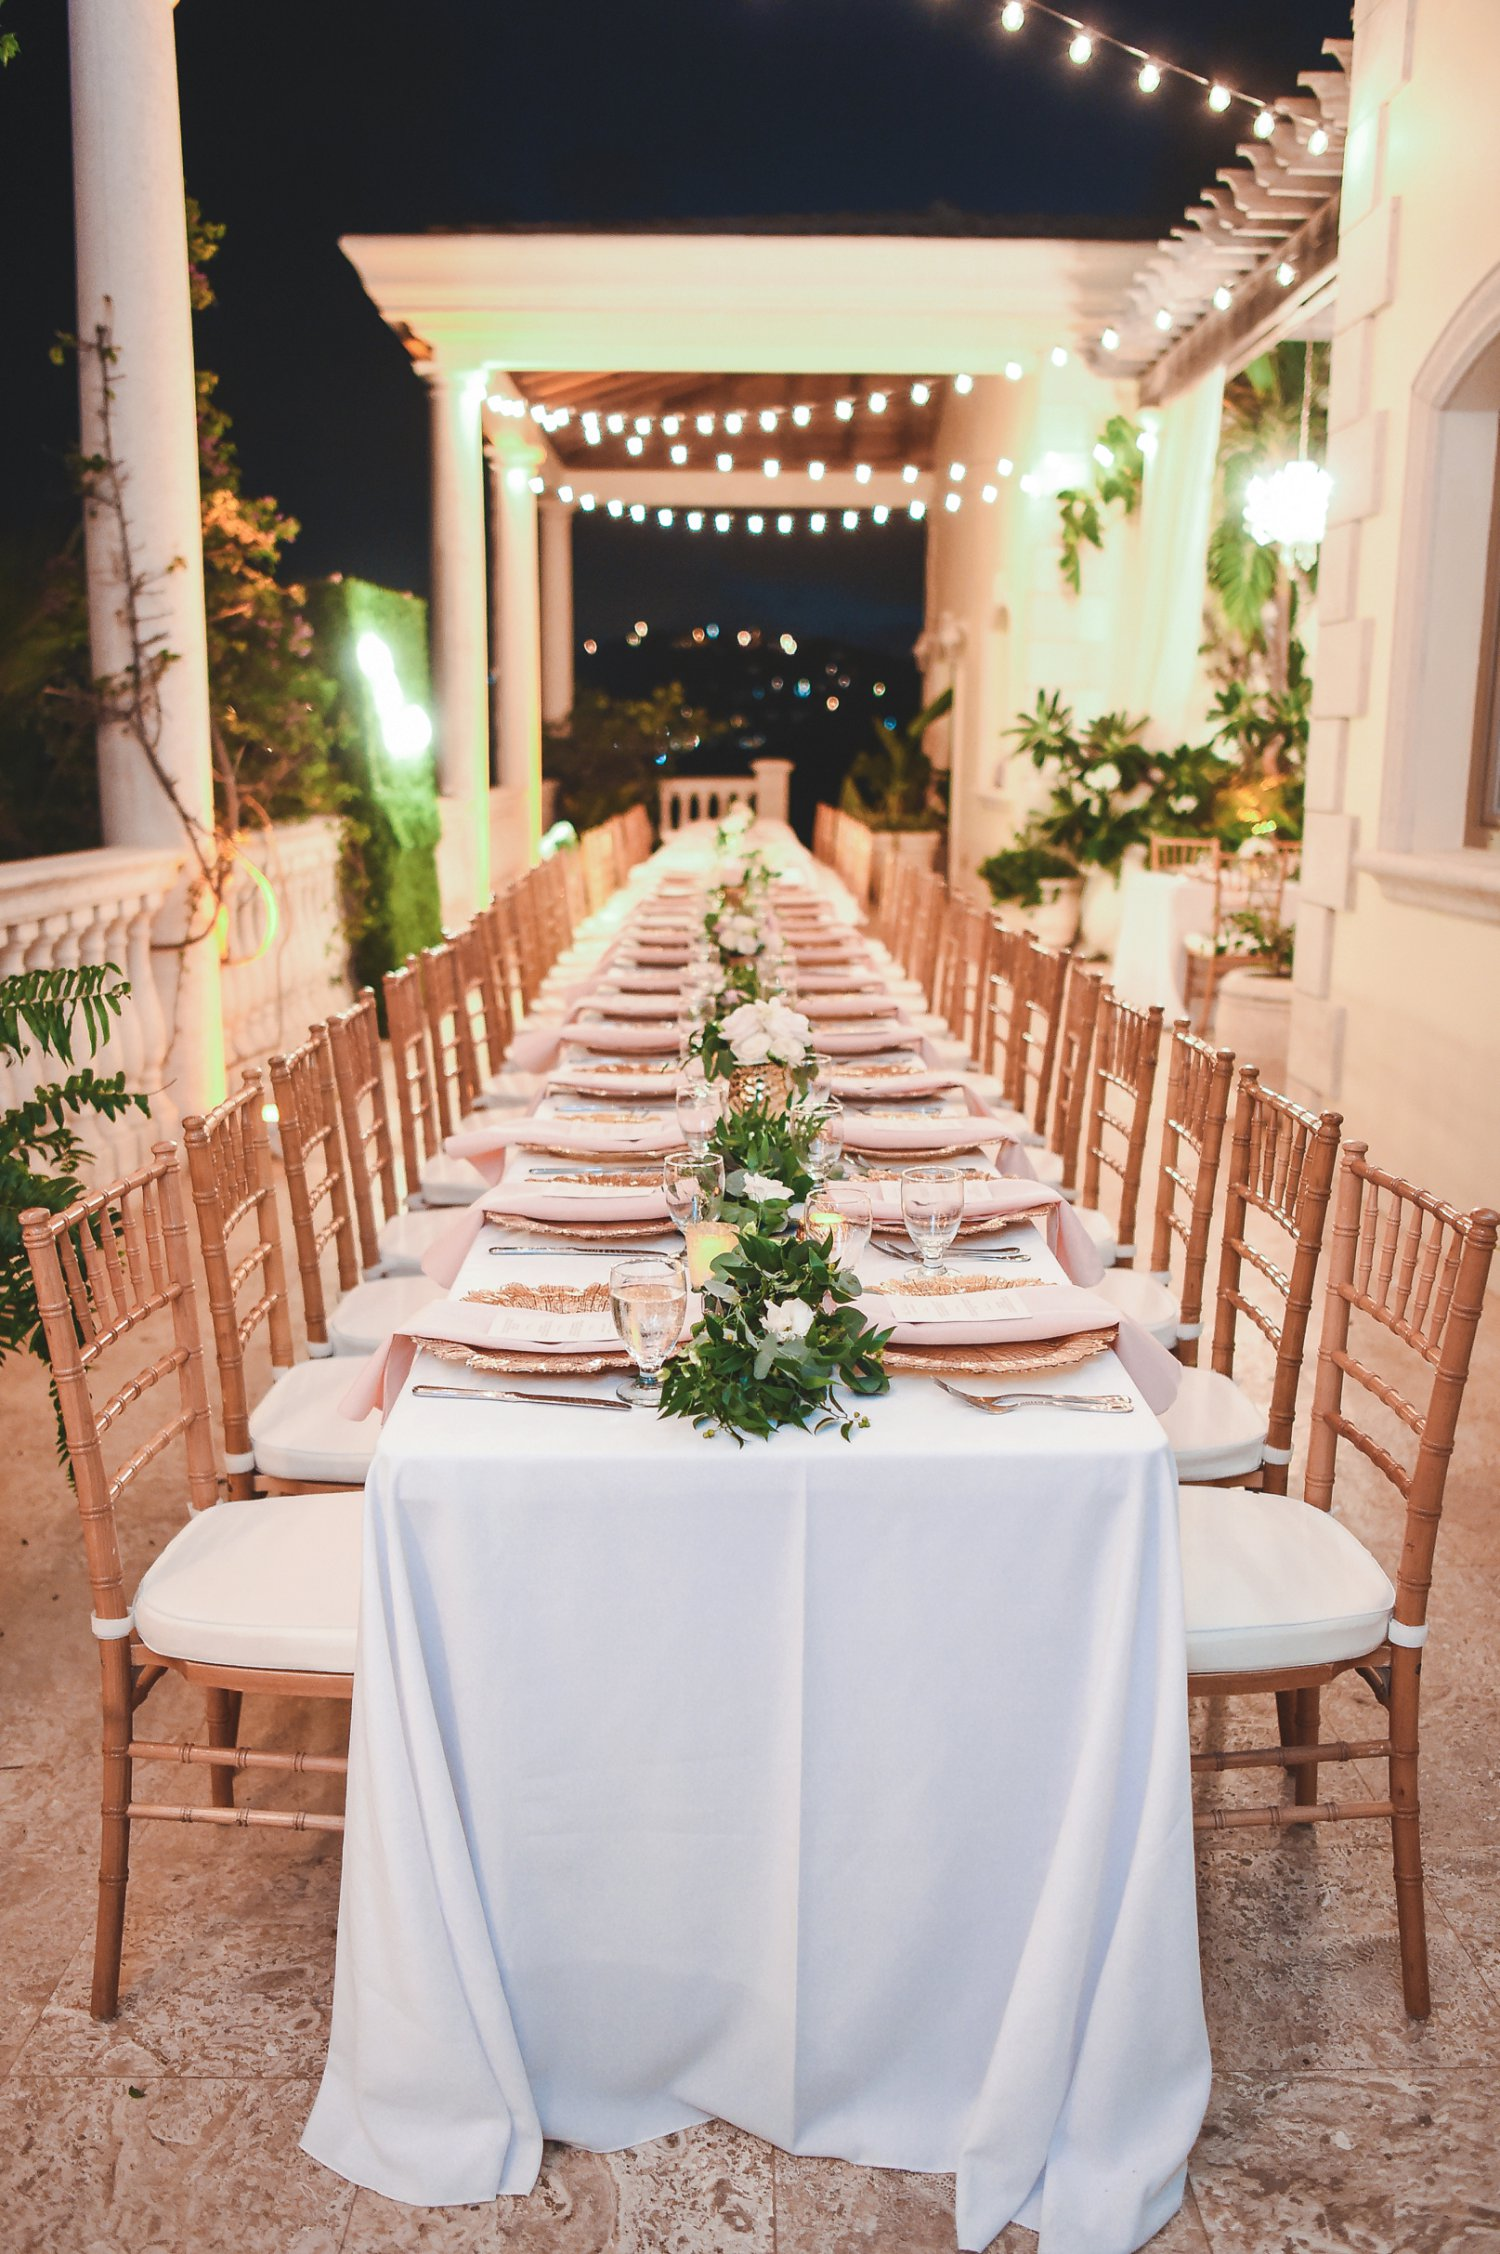 Wedding reception venue for destination weddings in St. Thomas, USVI